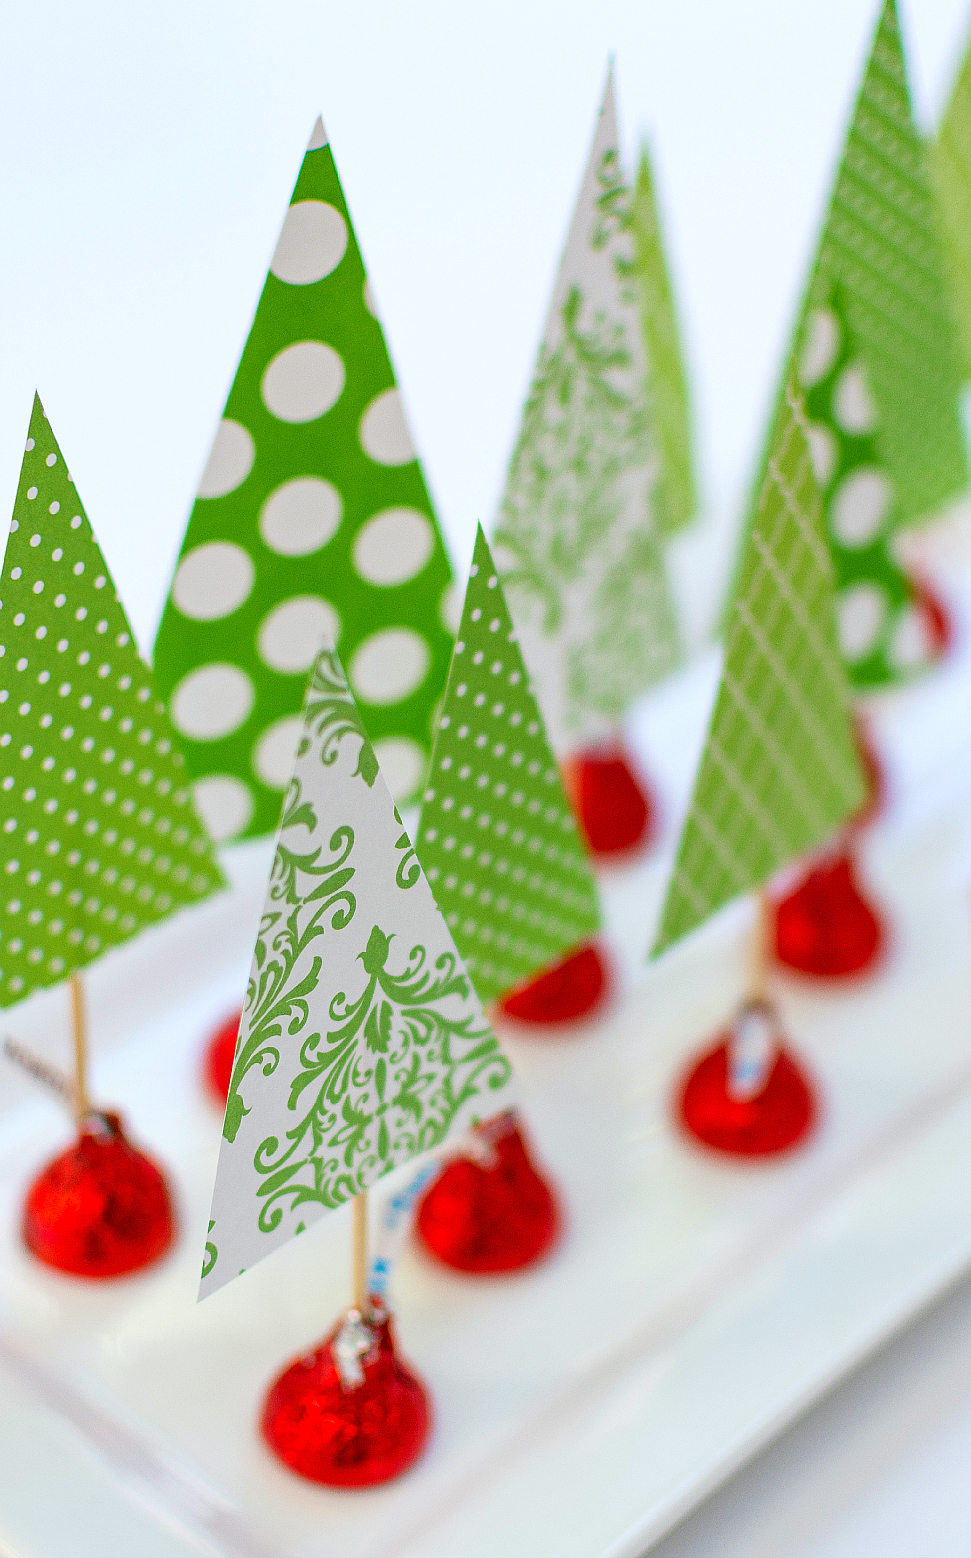 25 forest of treats - Christmas Table Decoration Ideas Easy